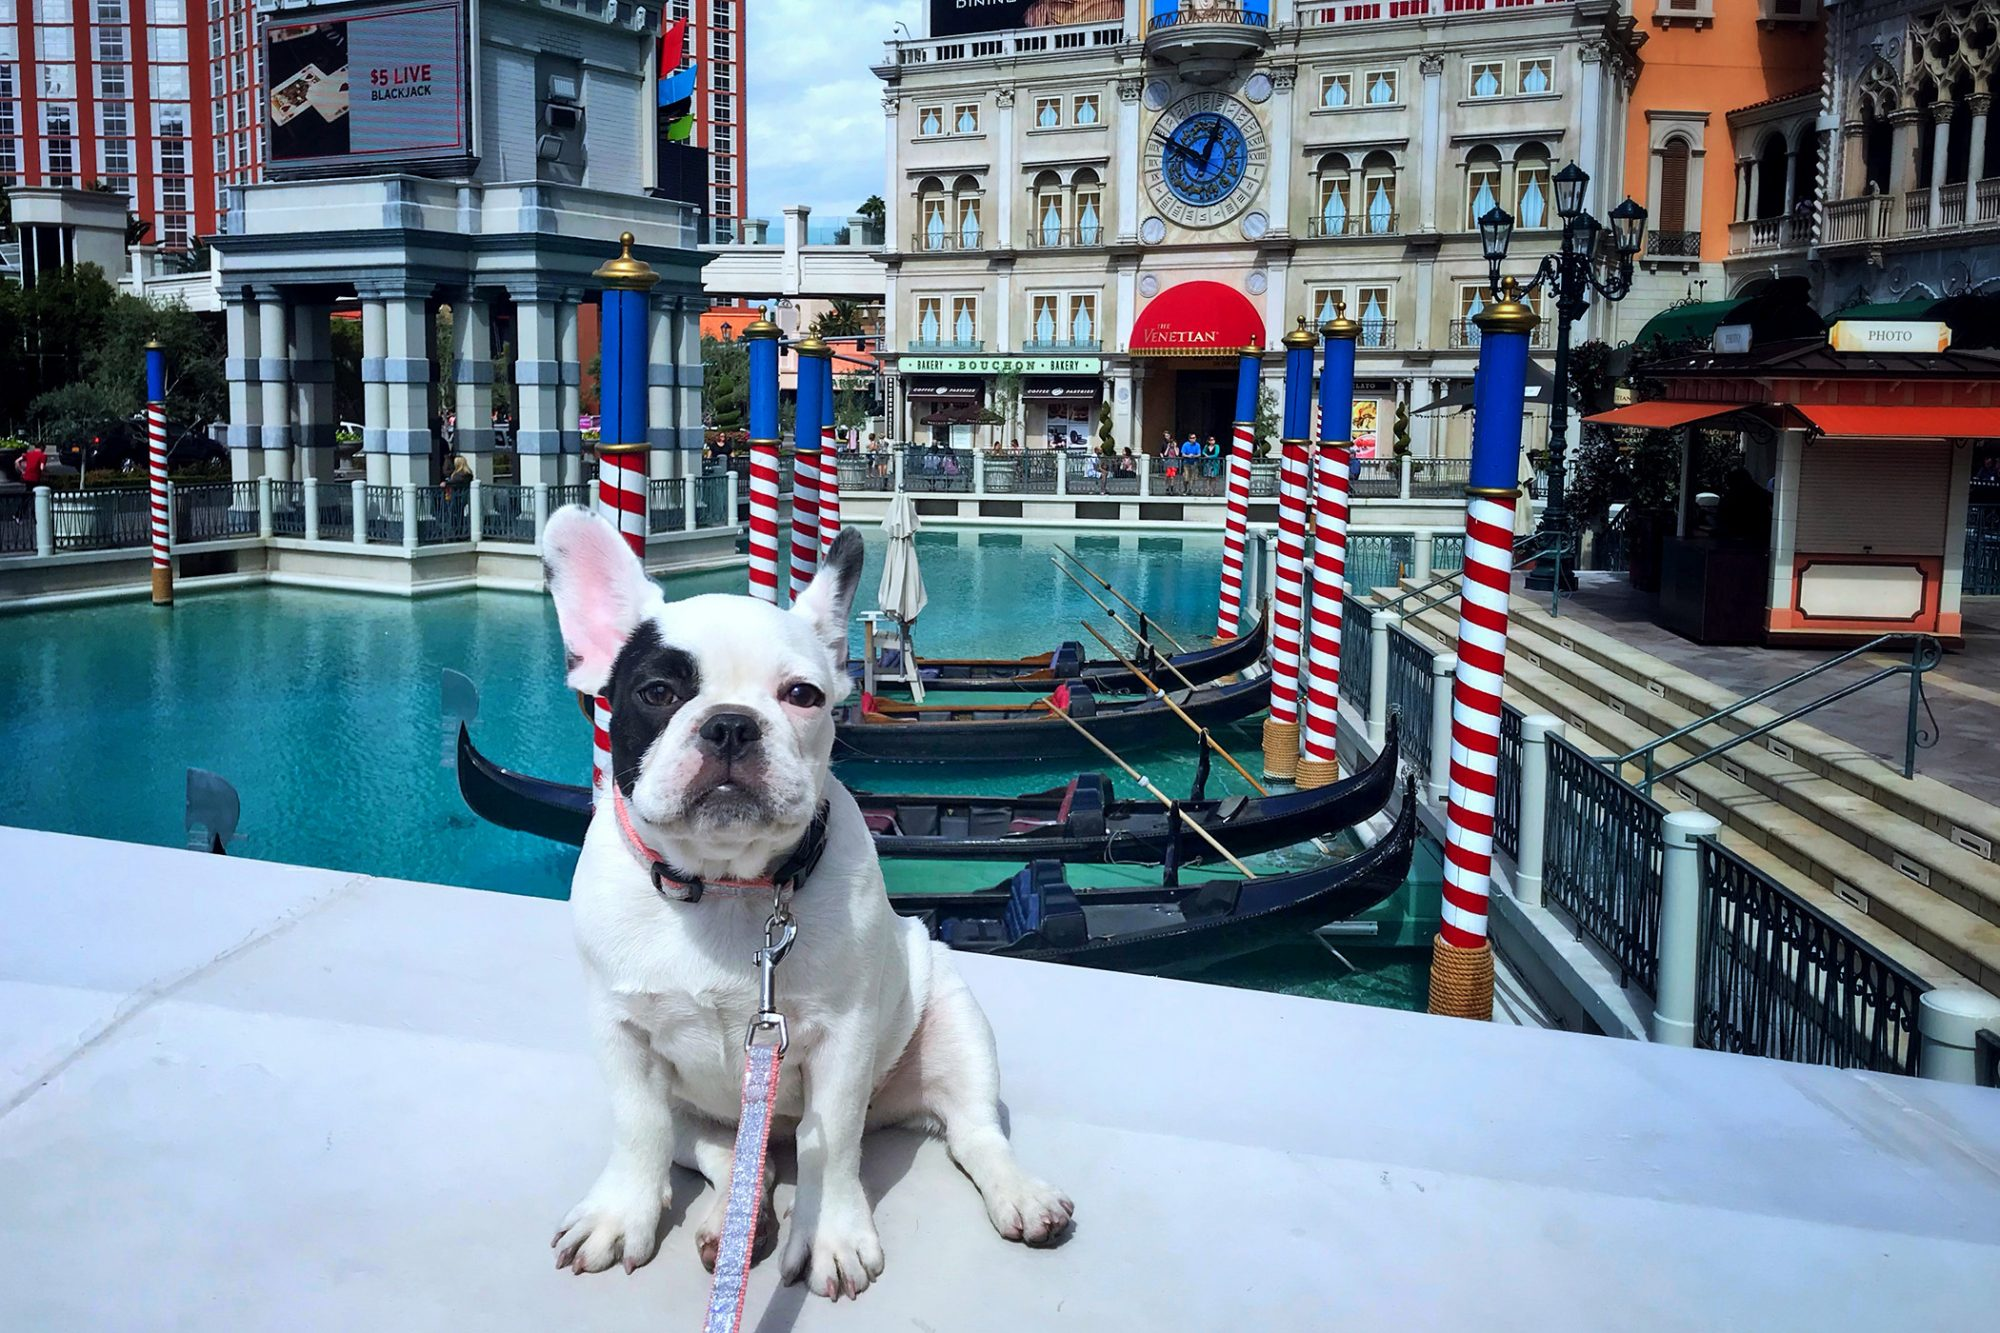 French Bulldog at the America's Venetian in Las Vegas